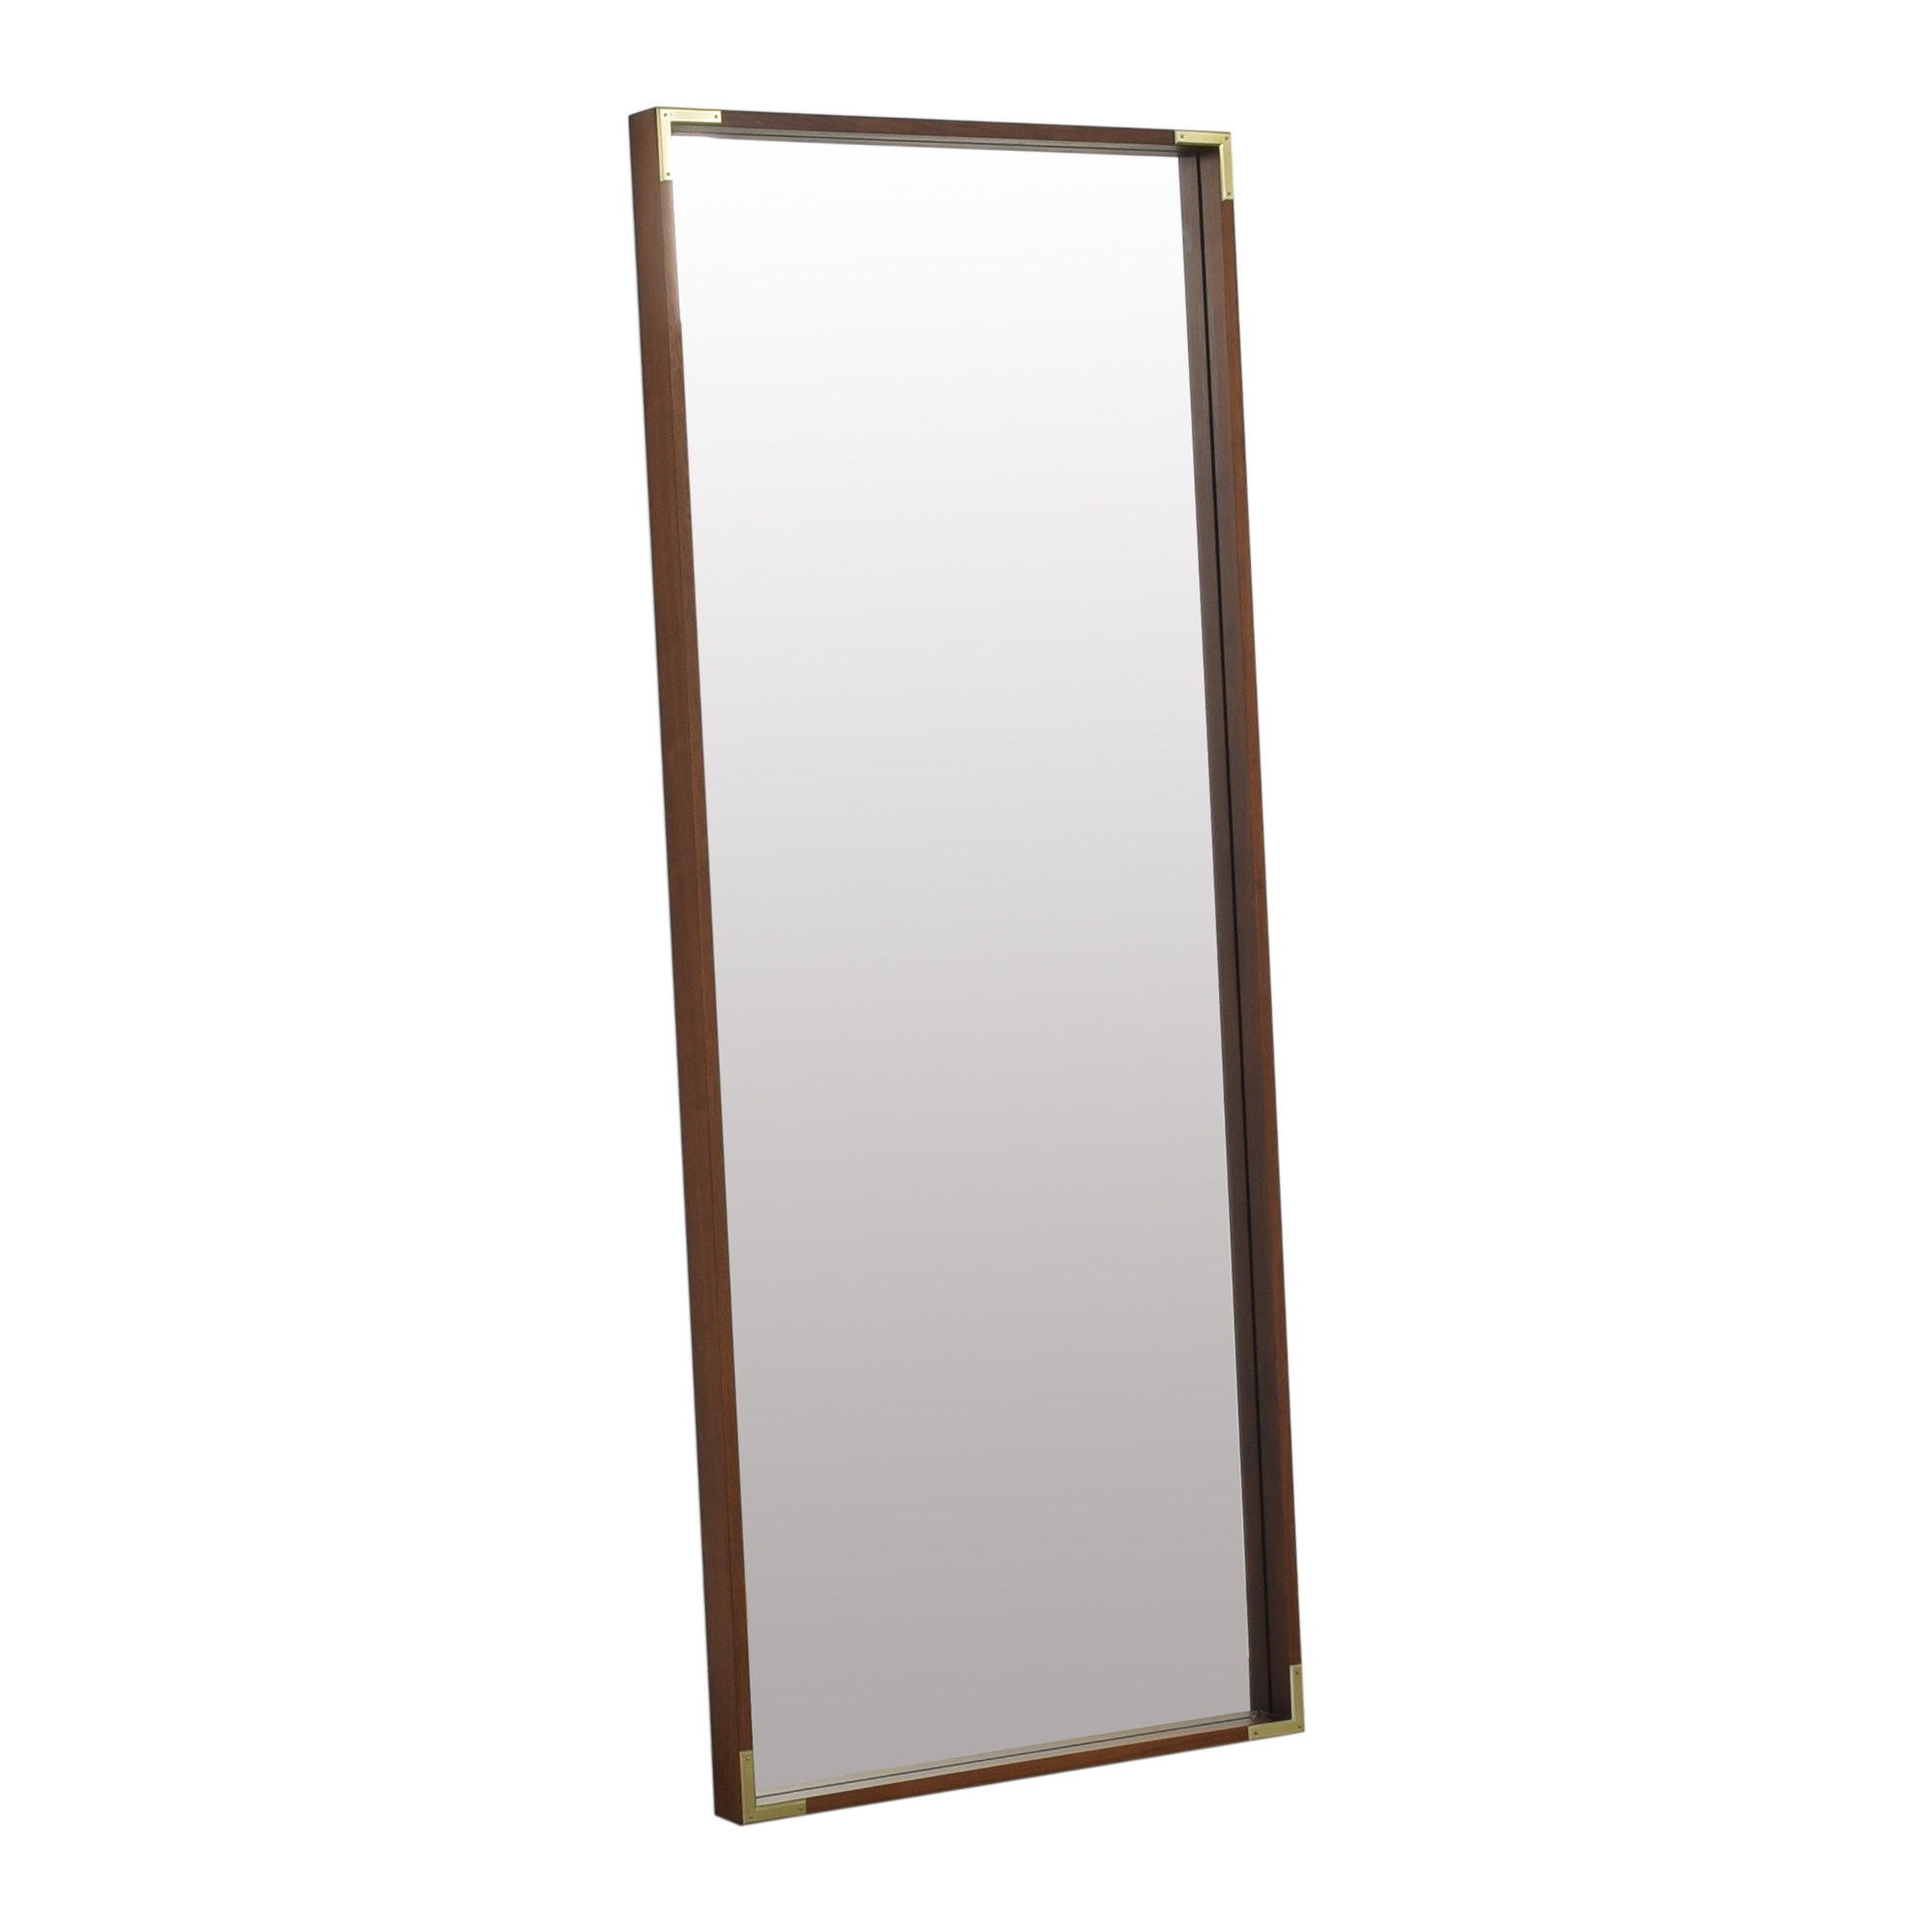 West Elm West Elm Malone Campaign Floor Mirror used